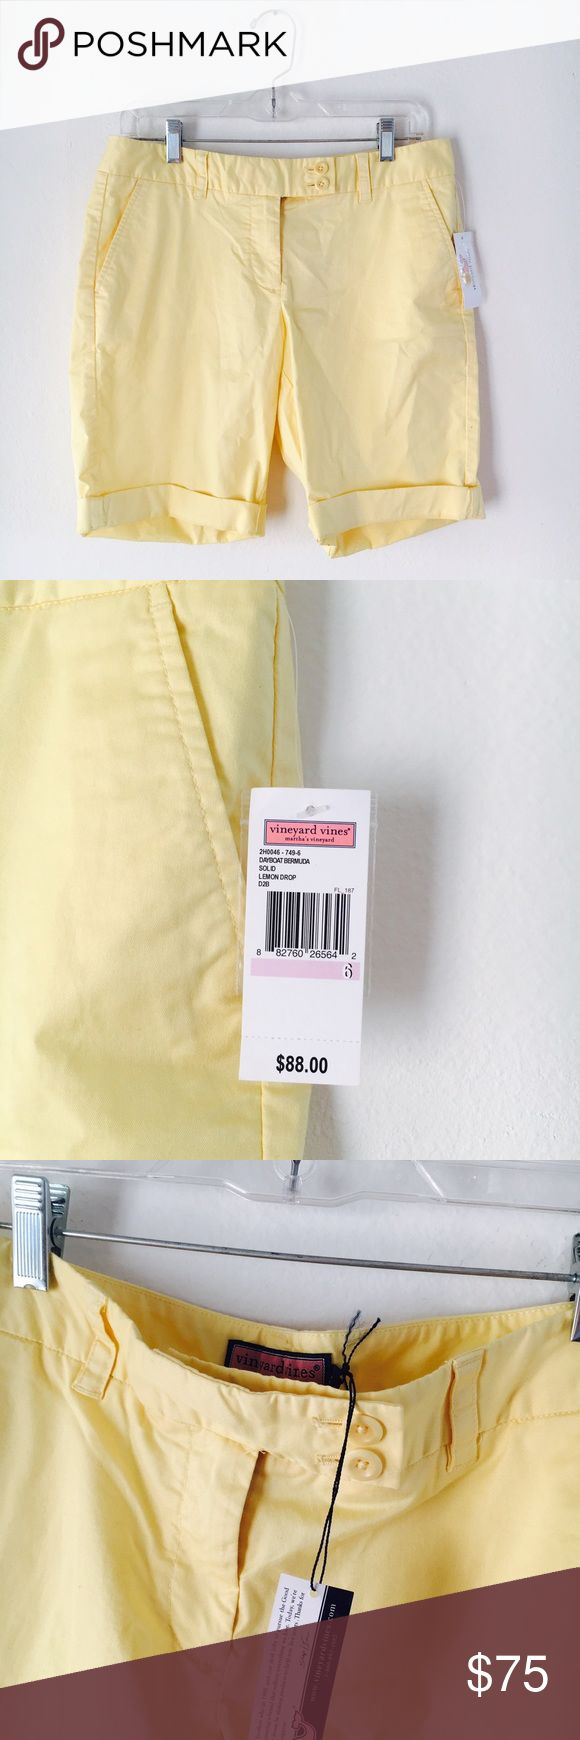 NWT | vineyard vine shorts yellow shorts  * amazing condition  * no flaws   offers through the offer button Vineyard Vines Shorts